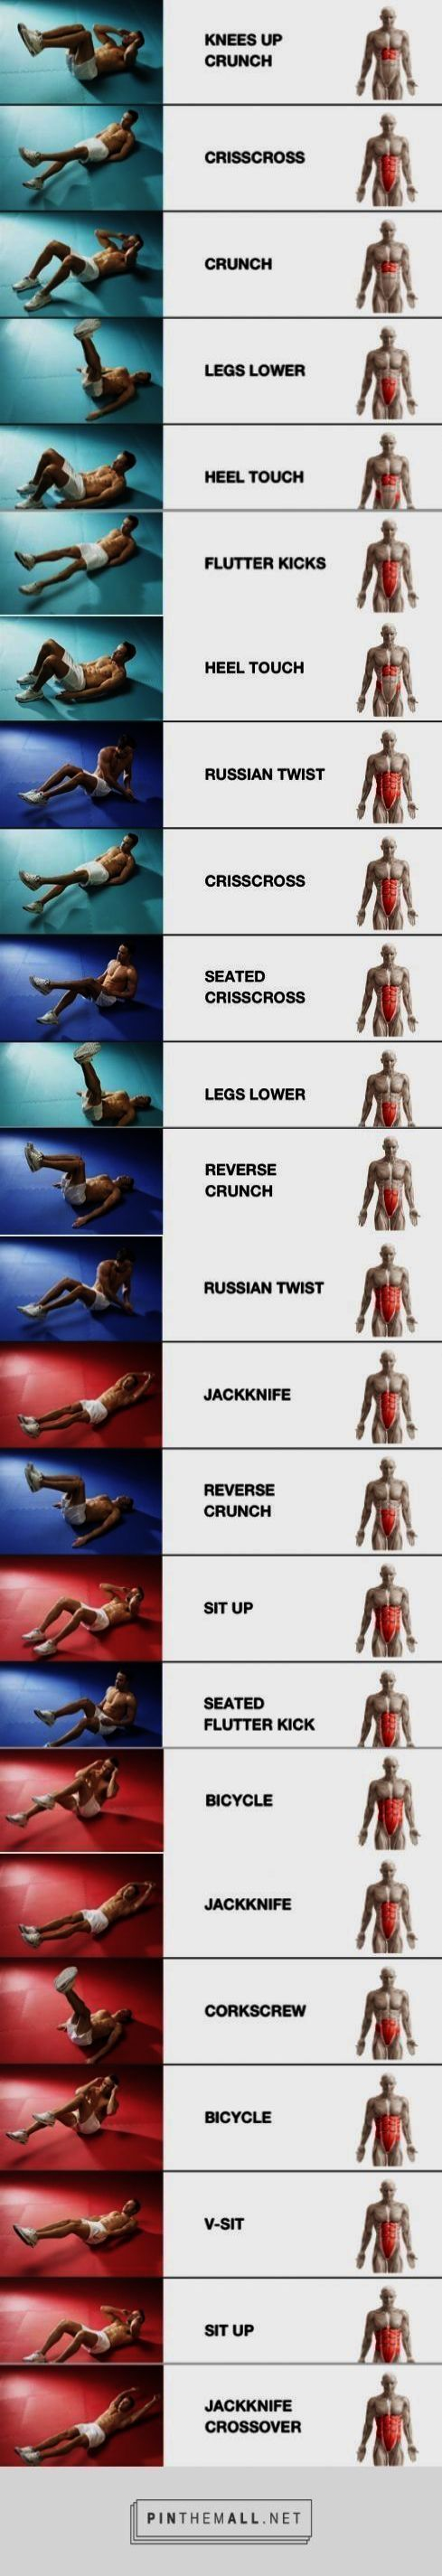 Ab Workout Routine For Men because Ab Workouts For Powerlifting next Ab Workout Routine For Teenage Guys on Abs Workout Program Home - Jim Mead #sideabworkouts Ab Workout Routine For Men because Ab Workouts For Powerlifting next Ab Workout Routine For Teenage Guys on Abs Workout Program Home #sideabworkouts